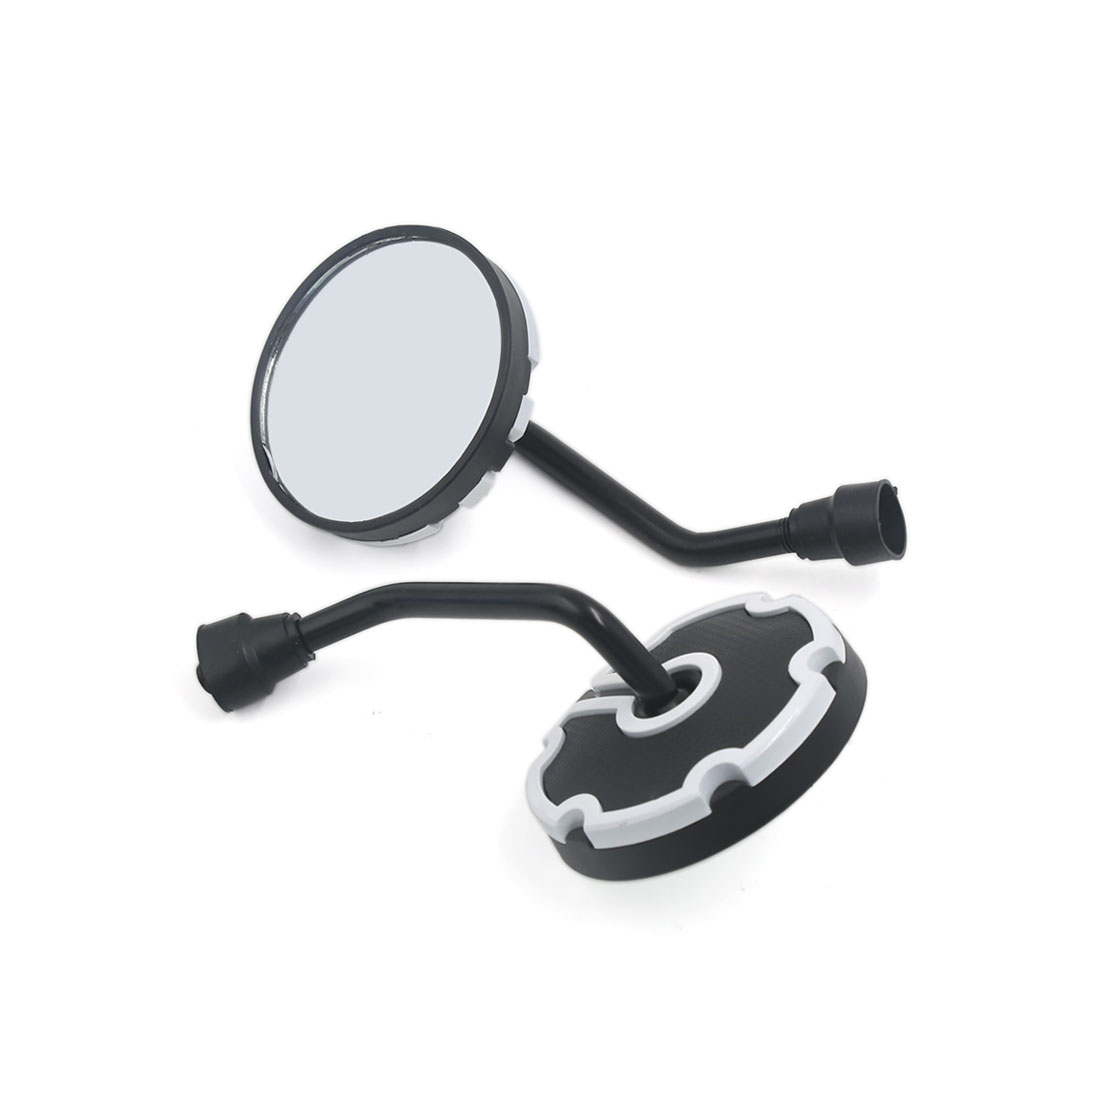 10mm Thread Round Shaped Motorcycle Bike Adjustable Rearview Mirror White Pair